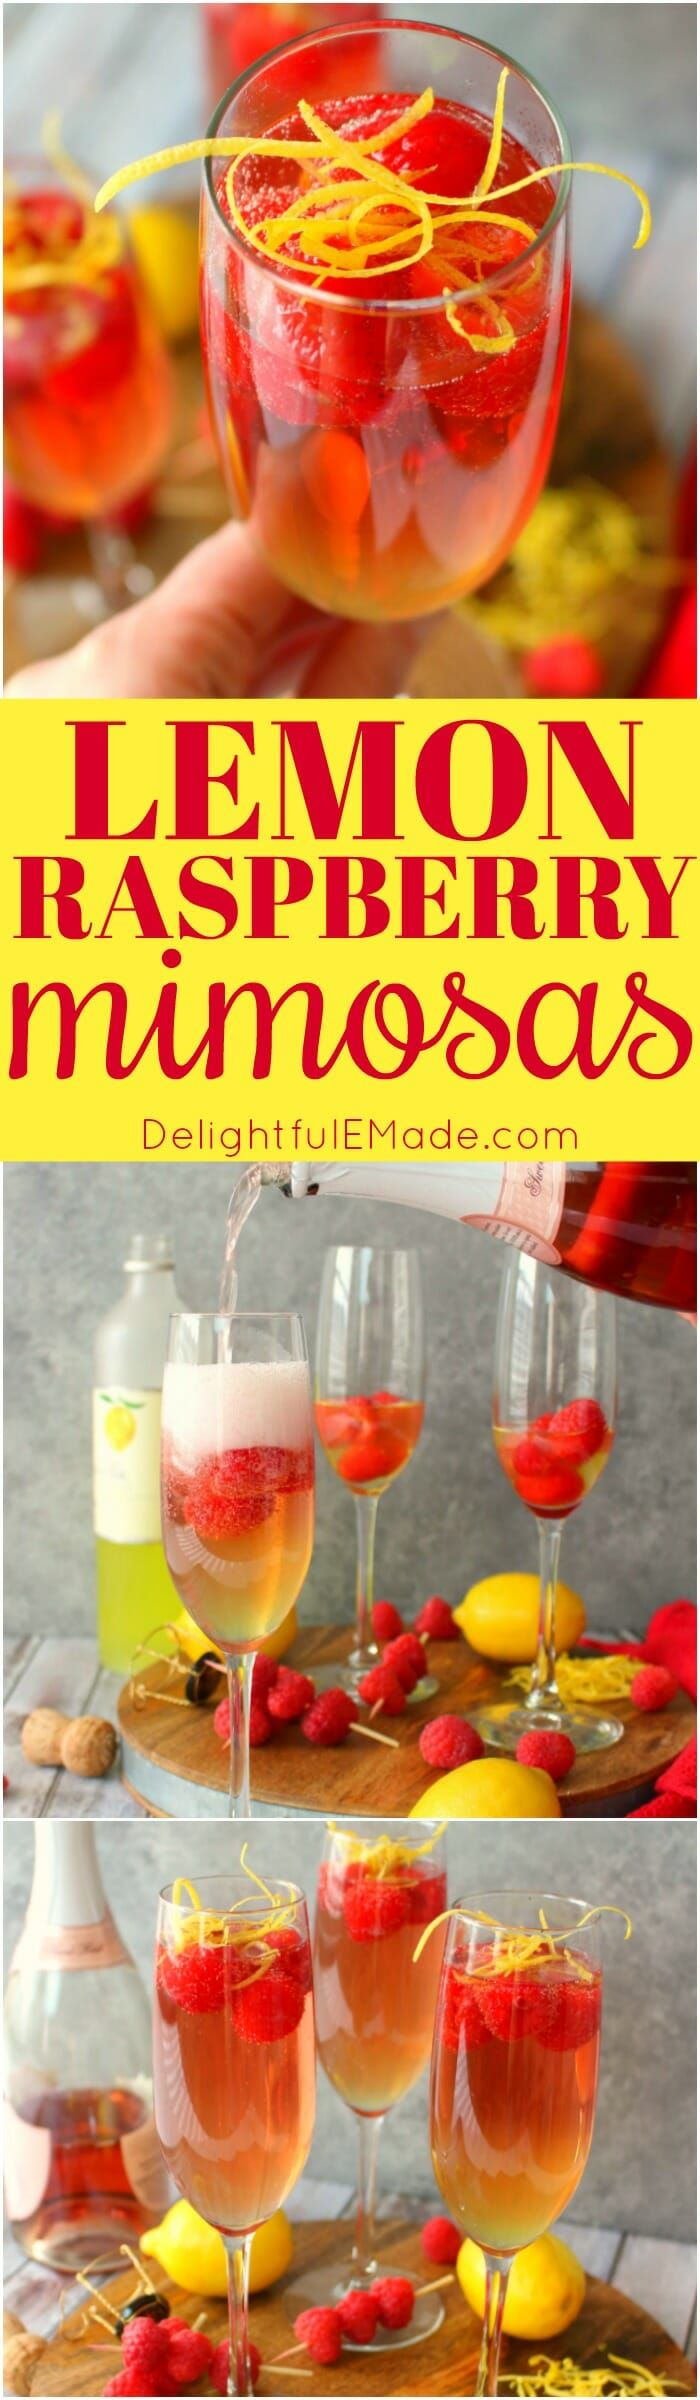 Mimosas brought to a whole new, glorious level! These Lemon Raspberry Mimosas are made with fresh raspberries, lemoncello liqueur, and topped off with a ChampagneRosé. Your brunch just got even more fabulous!